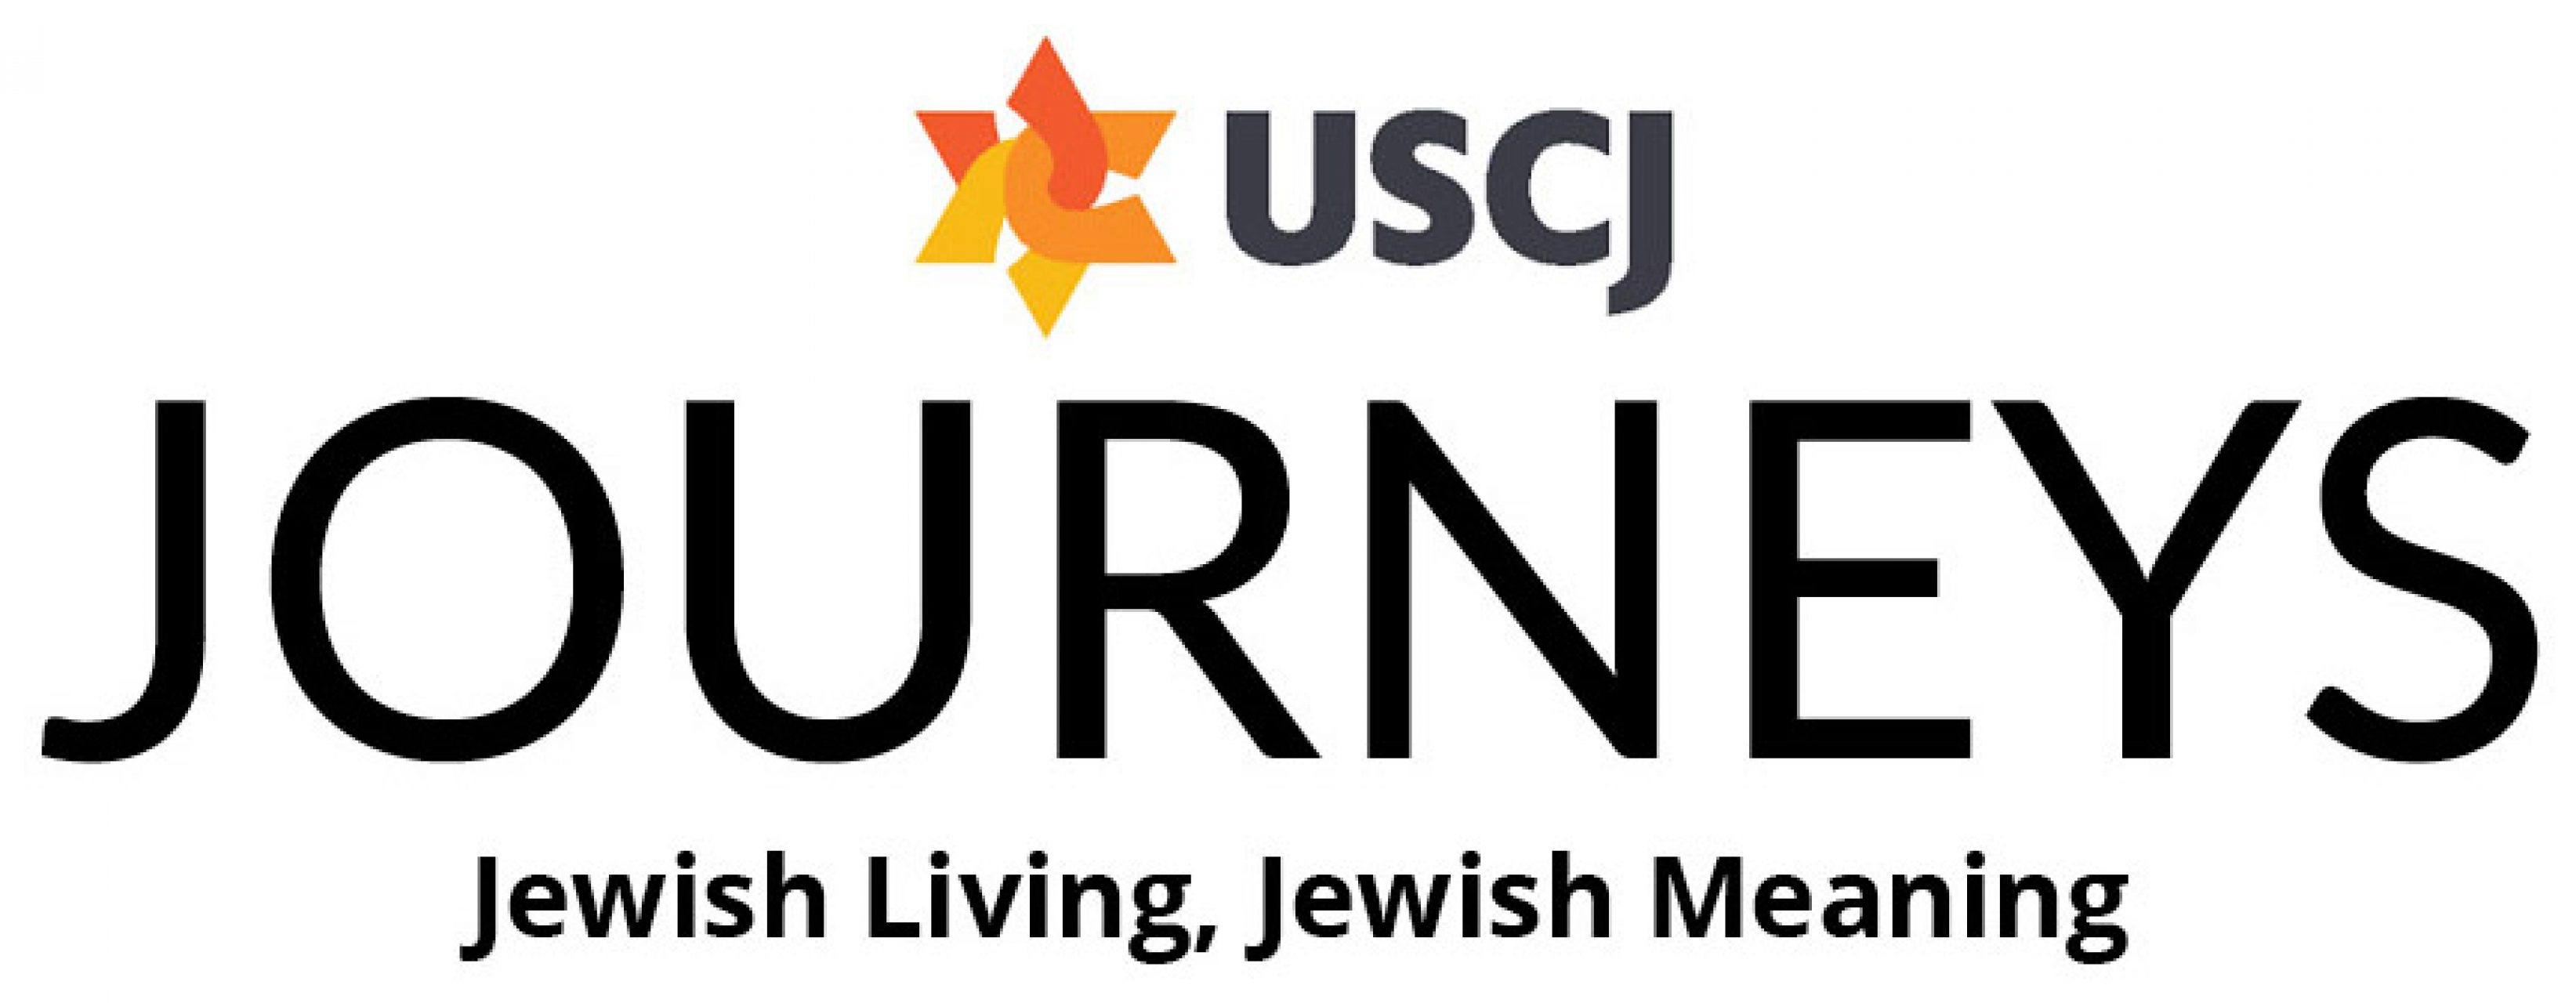 Journeys: Jewish Living, Jewish Meaning